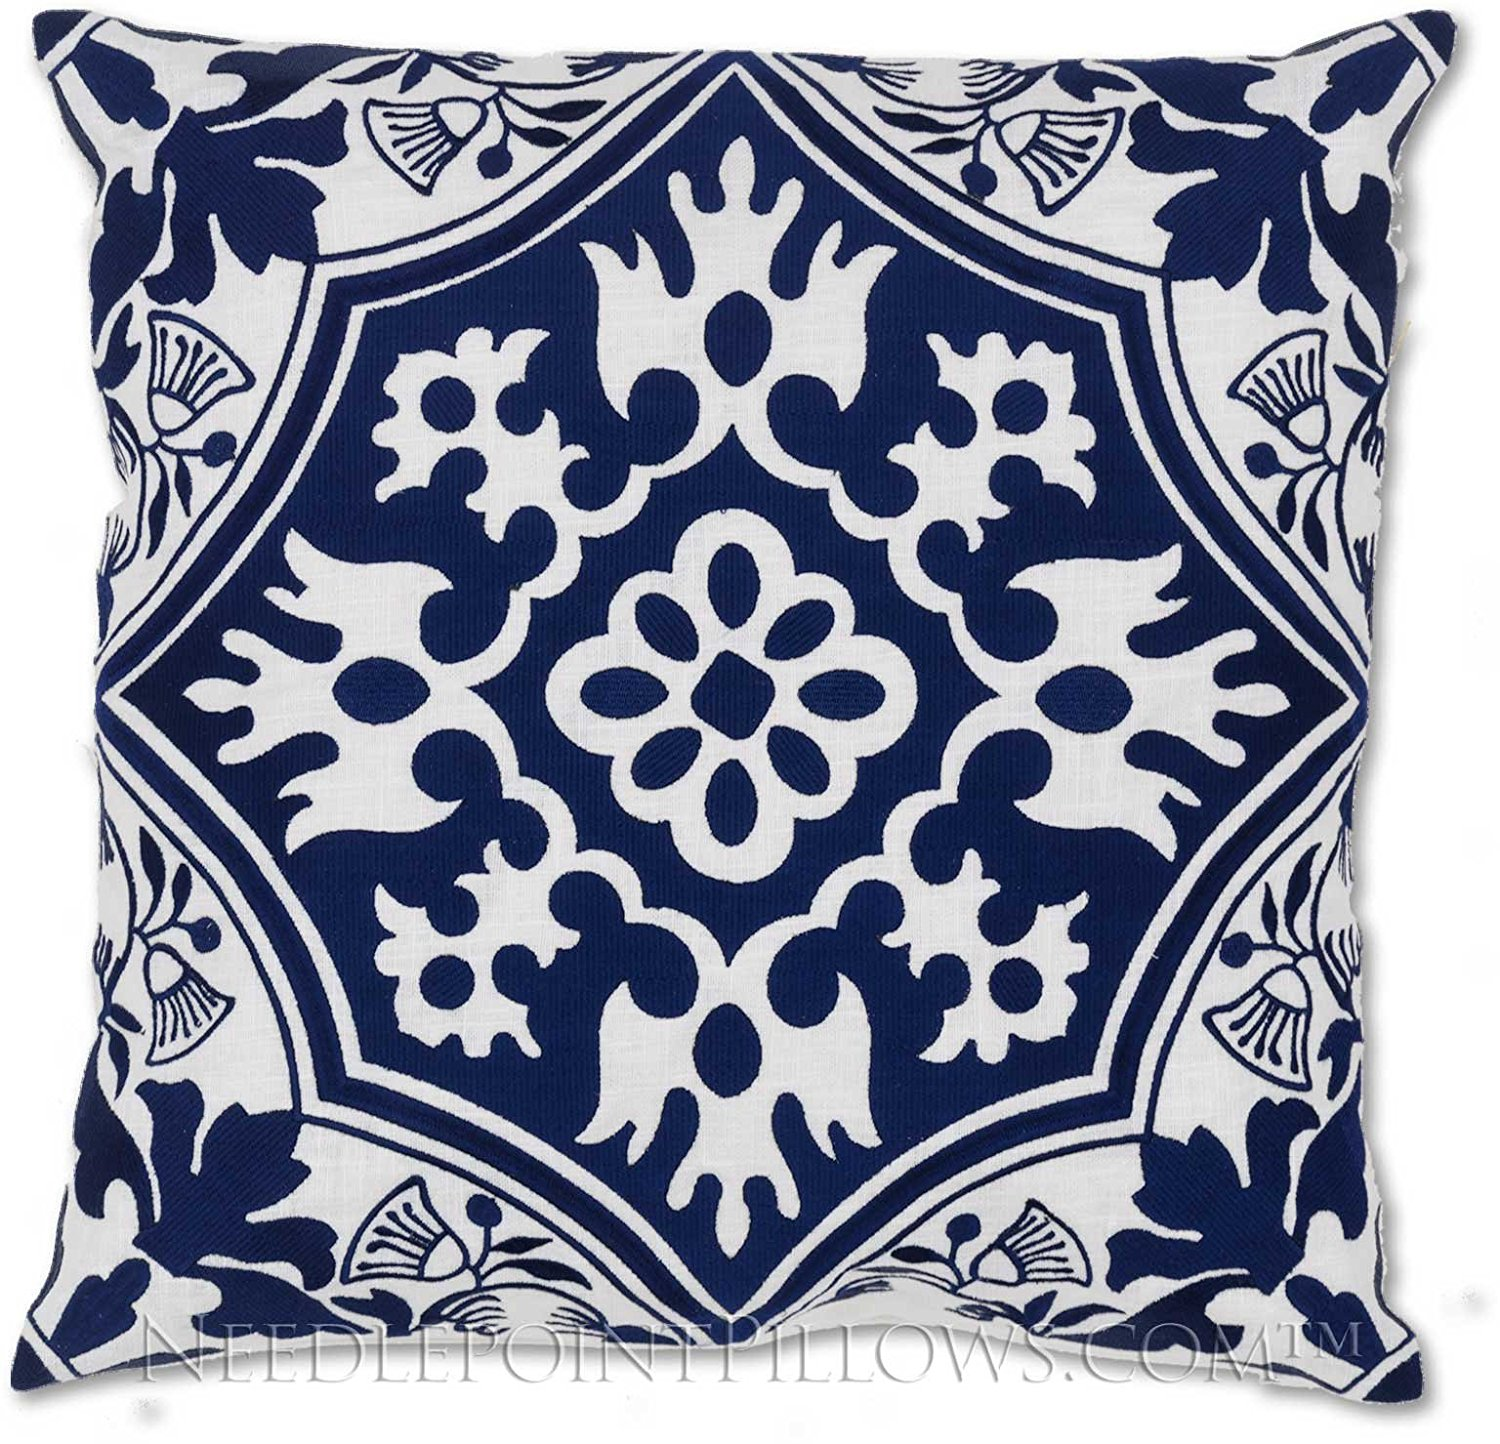 """Hand-crafted Decorative Embroidered William Morris Arts & Crafts Royal Navy Blue Stitched Designer Accent Pillow. 18"""" X 18"""""""